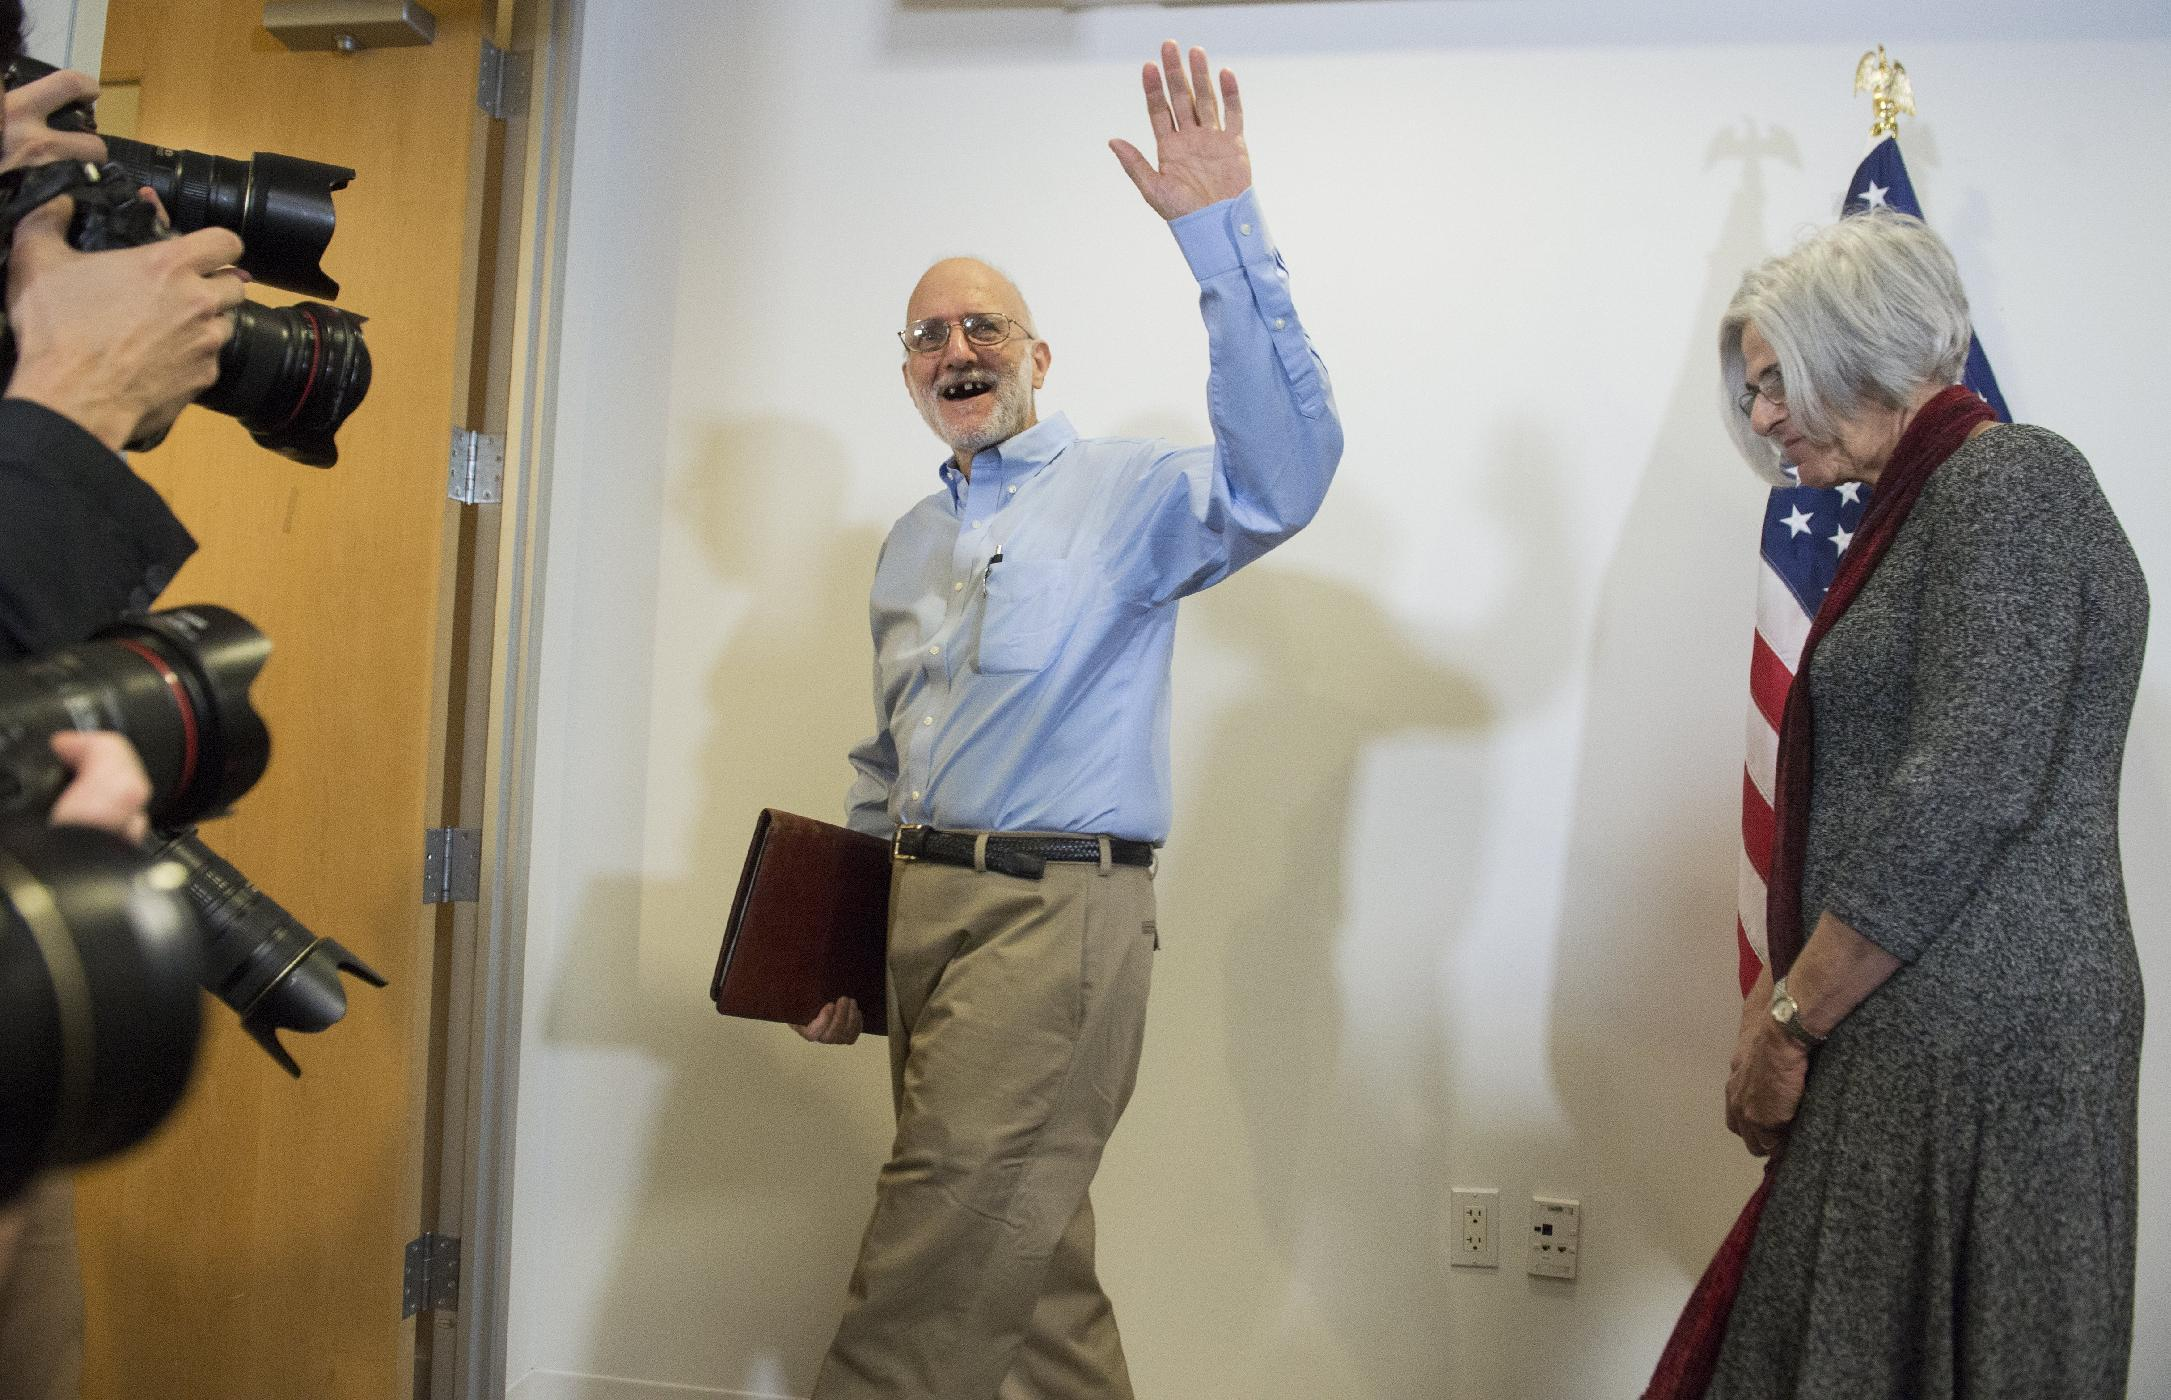 Jailed American, safely back home, hails Cuba shift